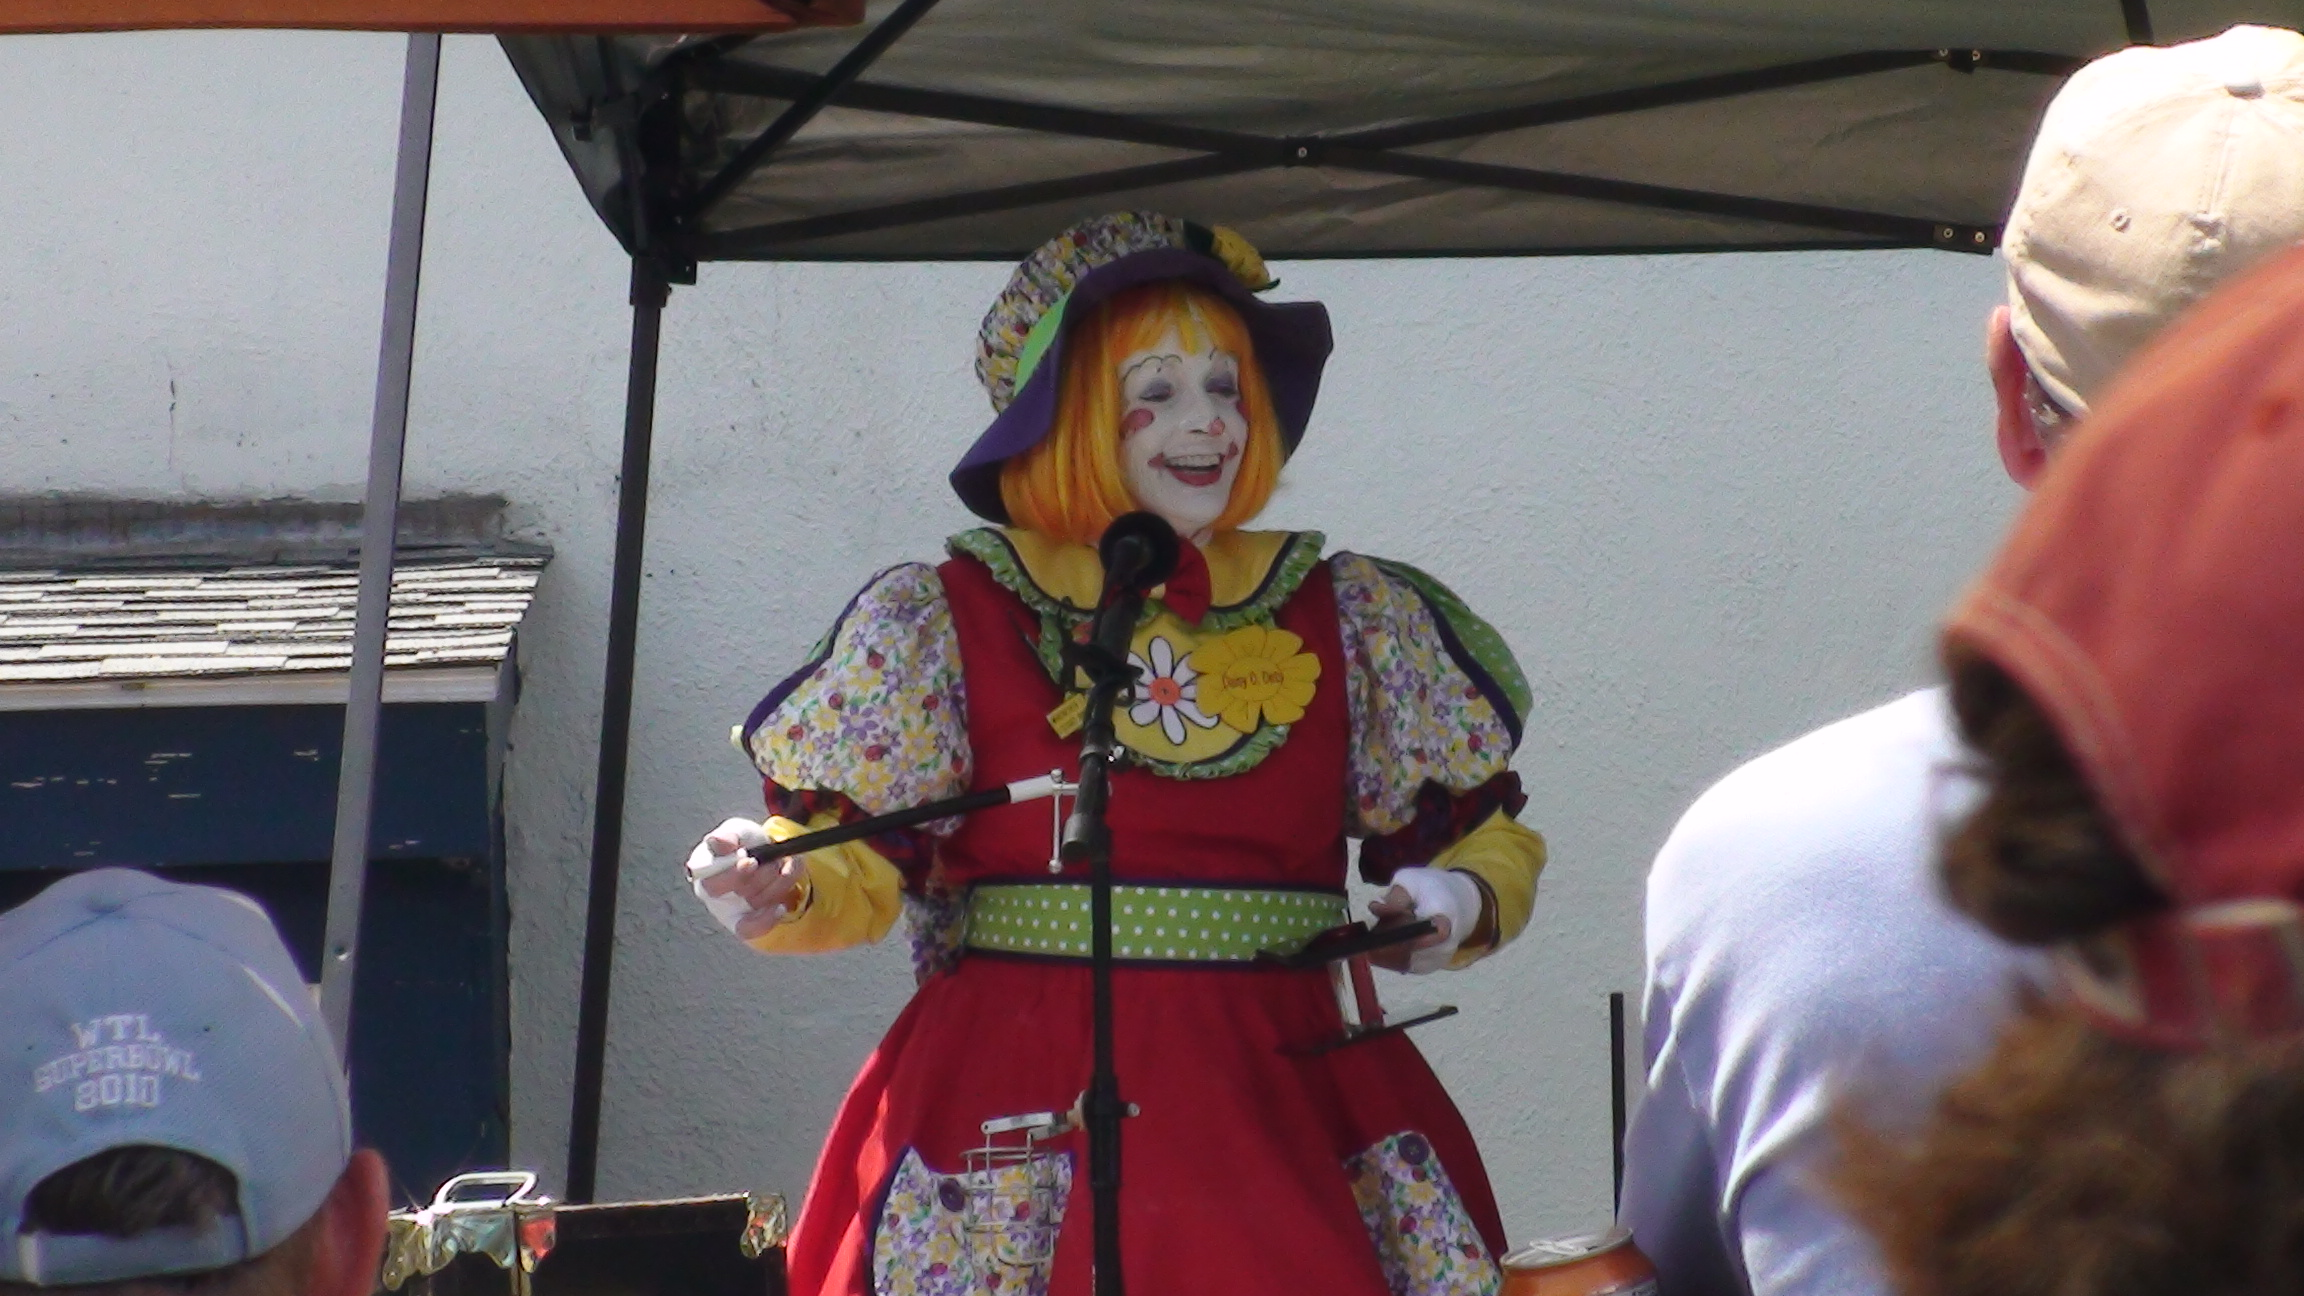 A Clown with a smile